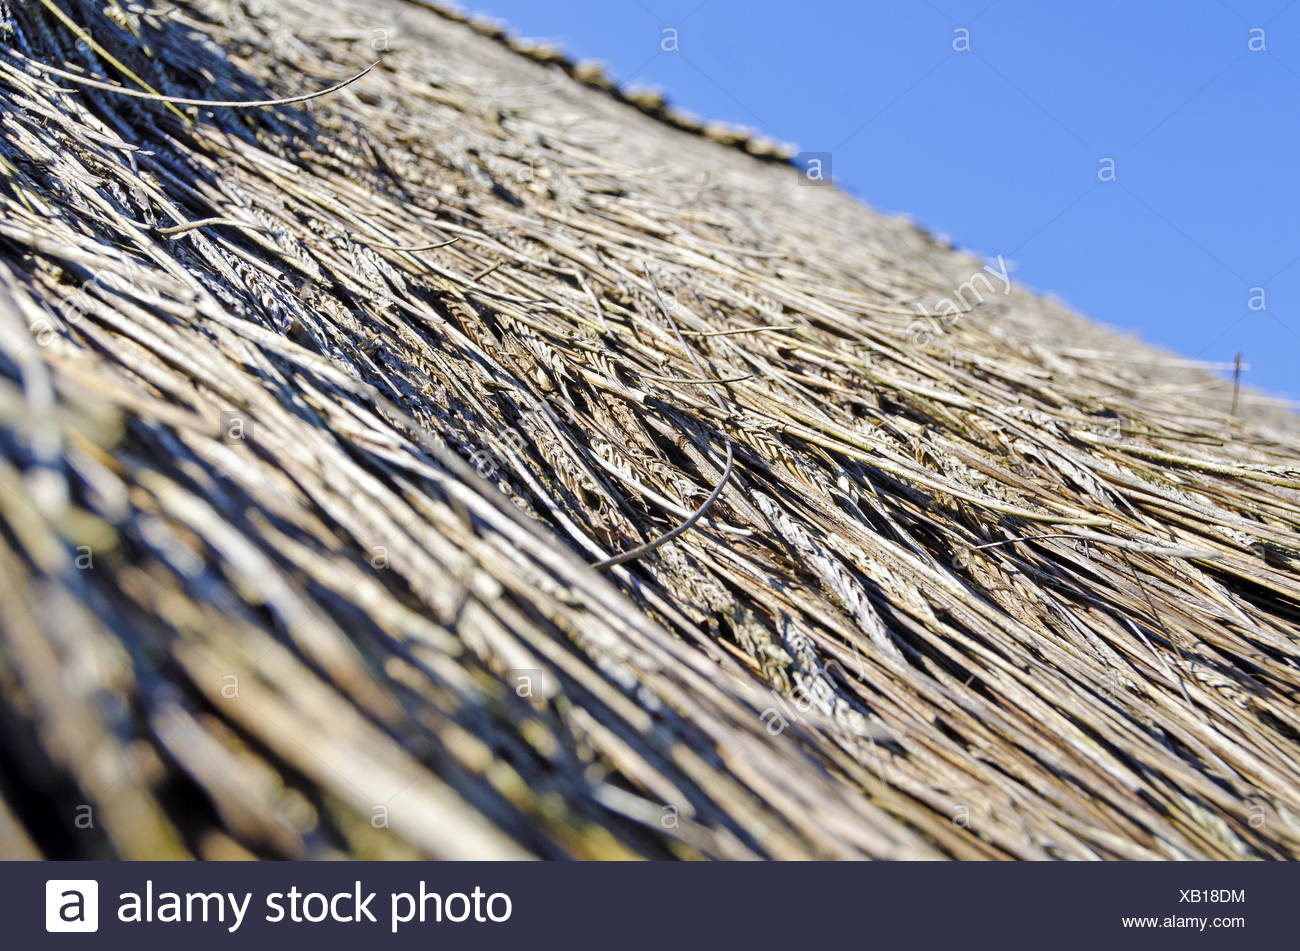 thatched roof with stray ears of corn - Stock Image